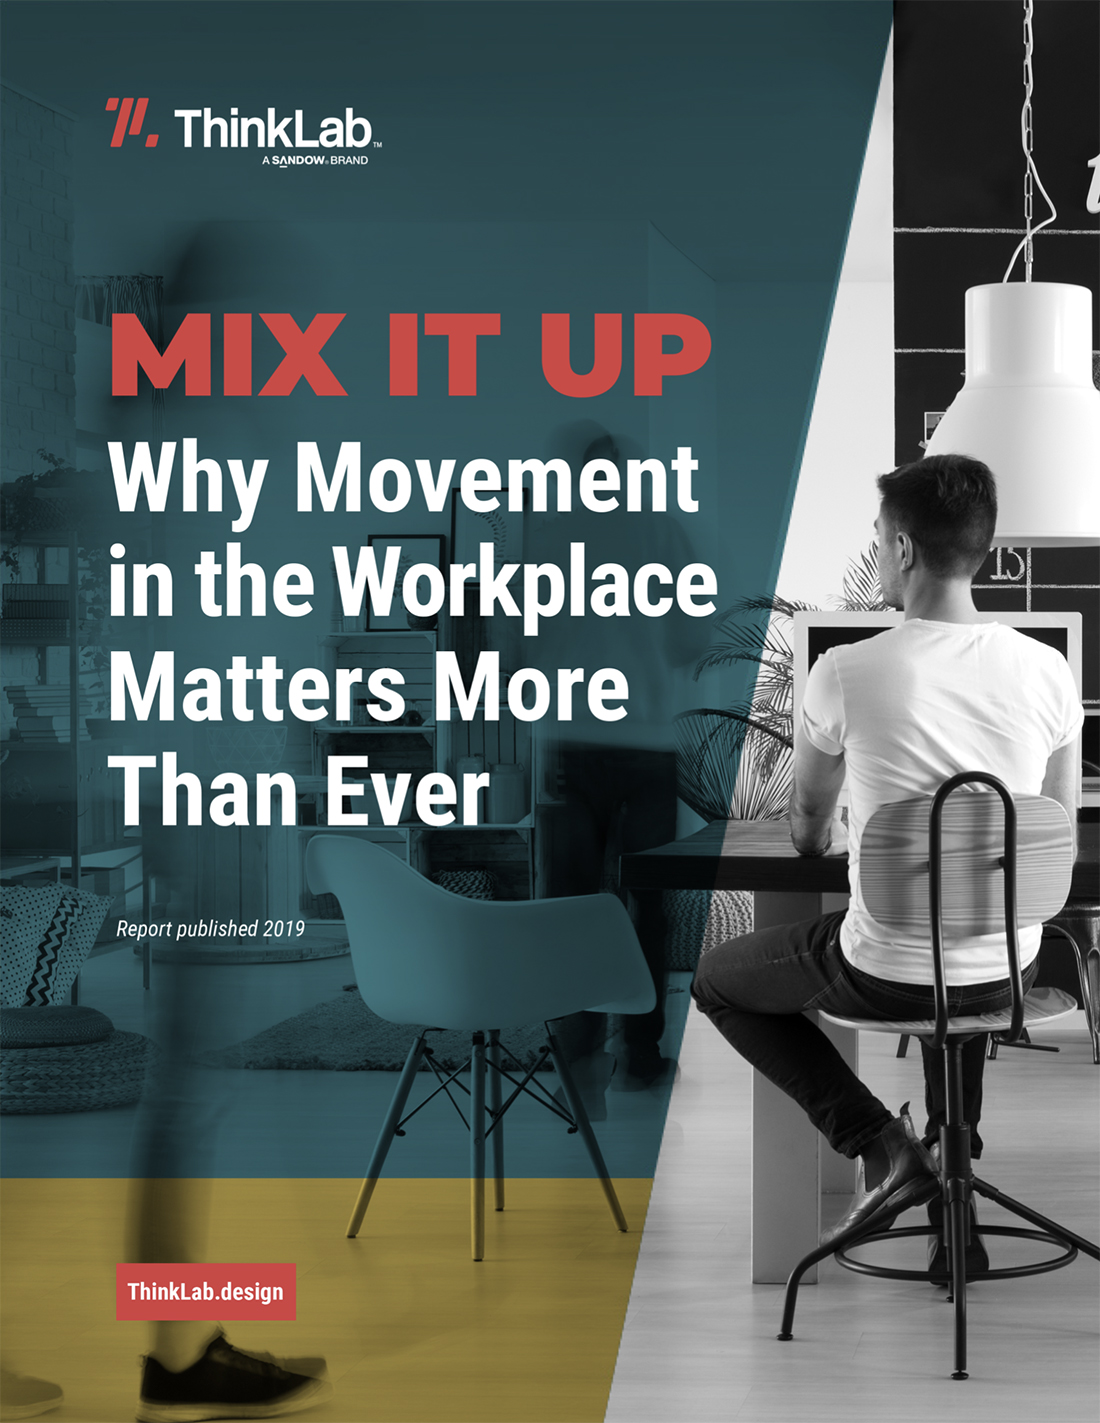 Mix it Up: Why Movement in the Workplace Matters More Than Ever